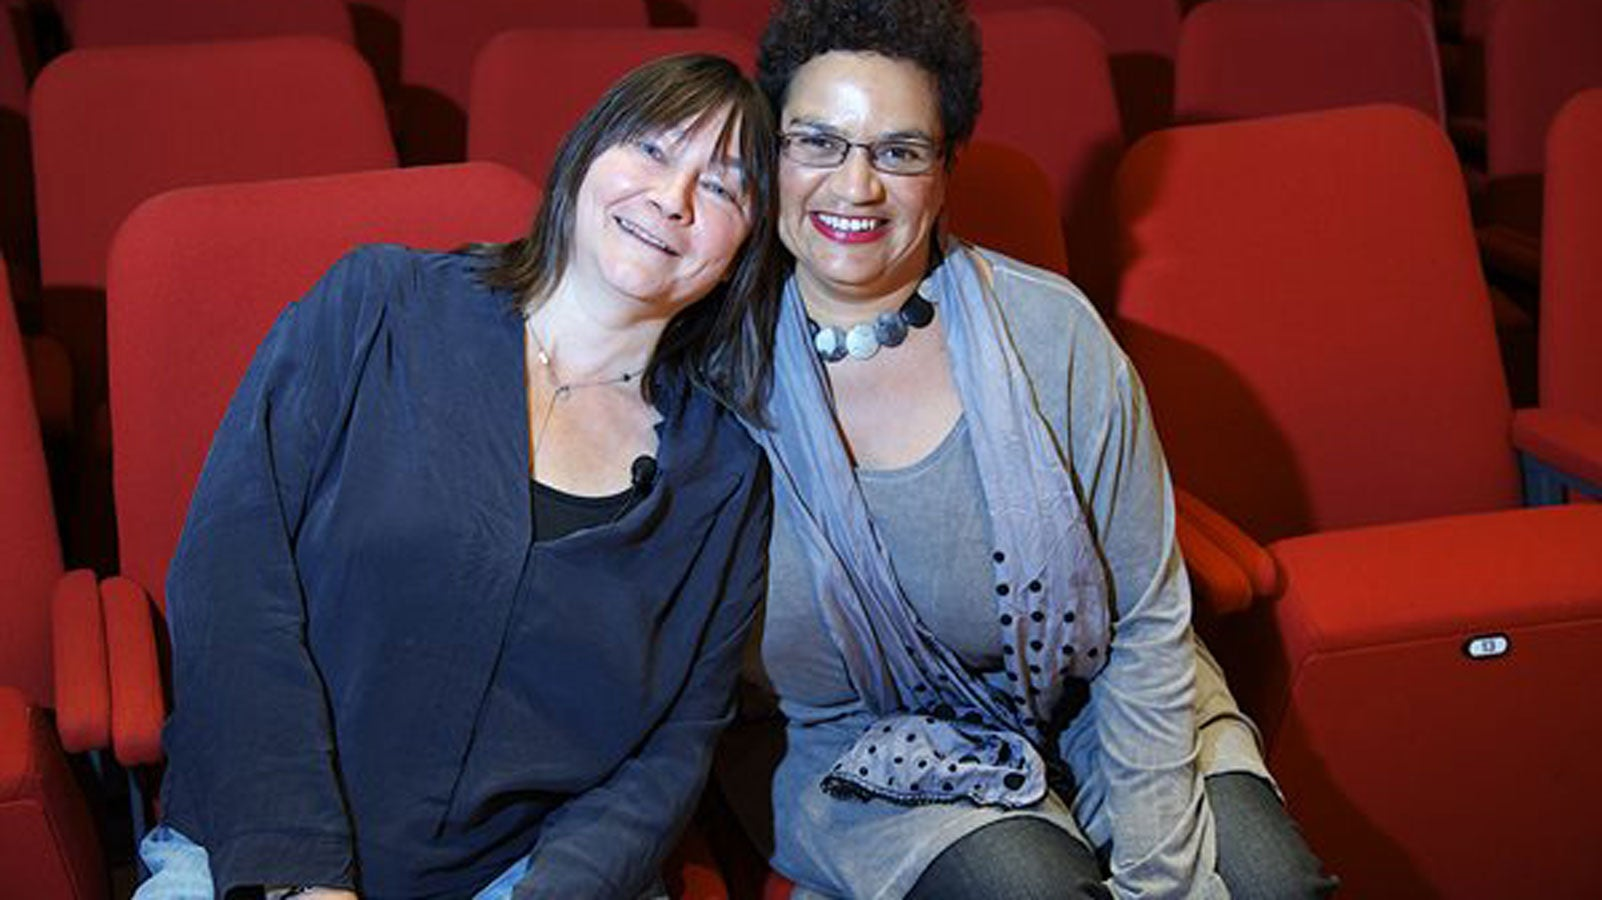 Ali Smith and Jackie Kay sitting next to eachother smiling